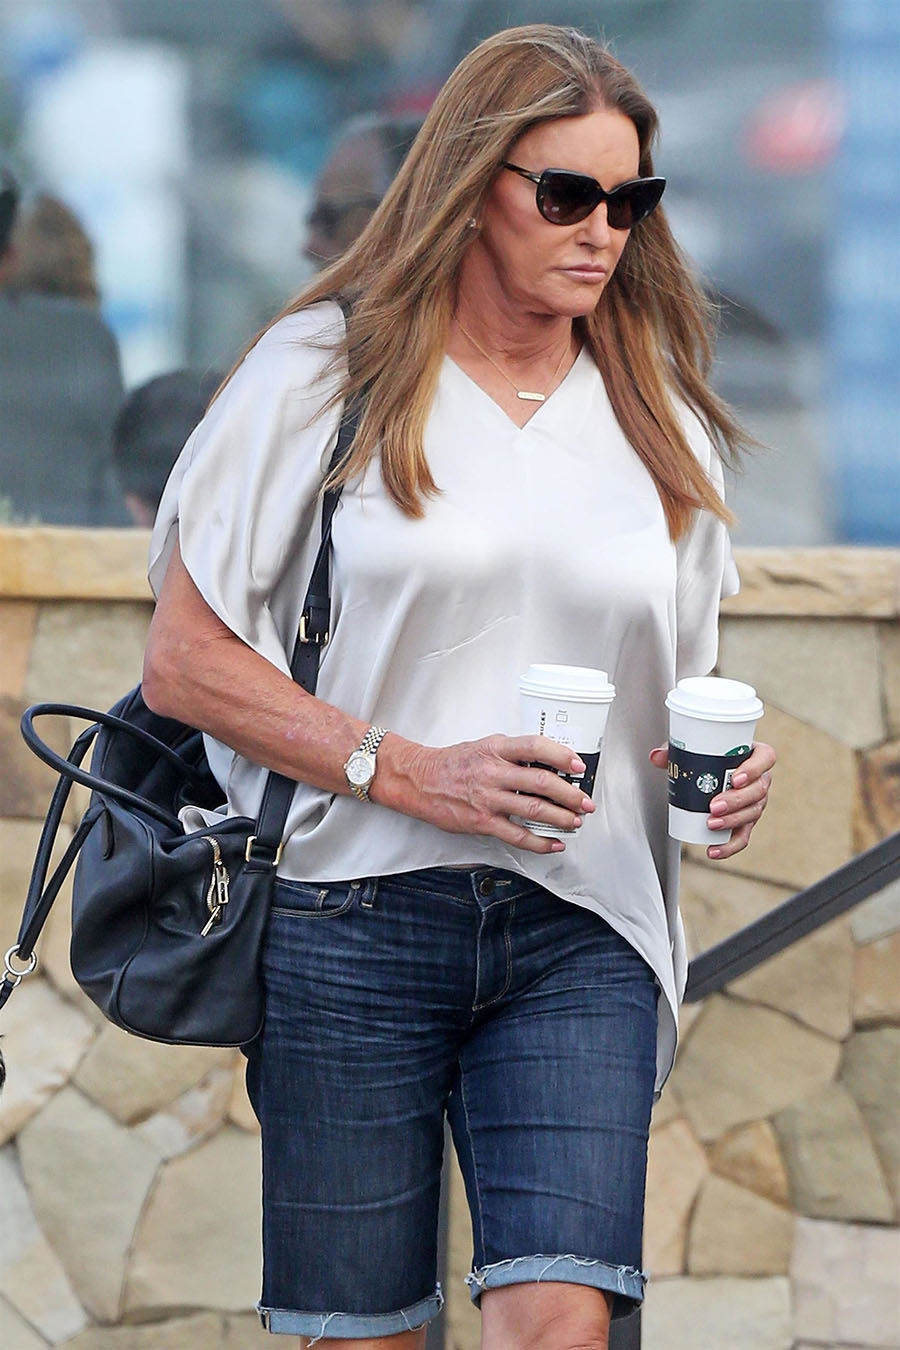 Caitlyn Jenner Formerly Bruce Stops To Pick Up